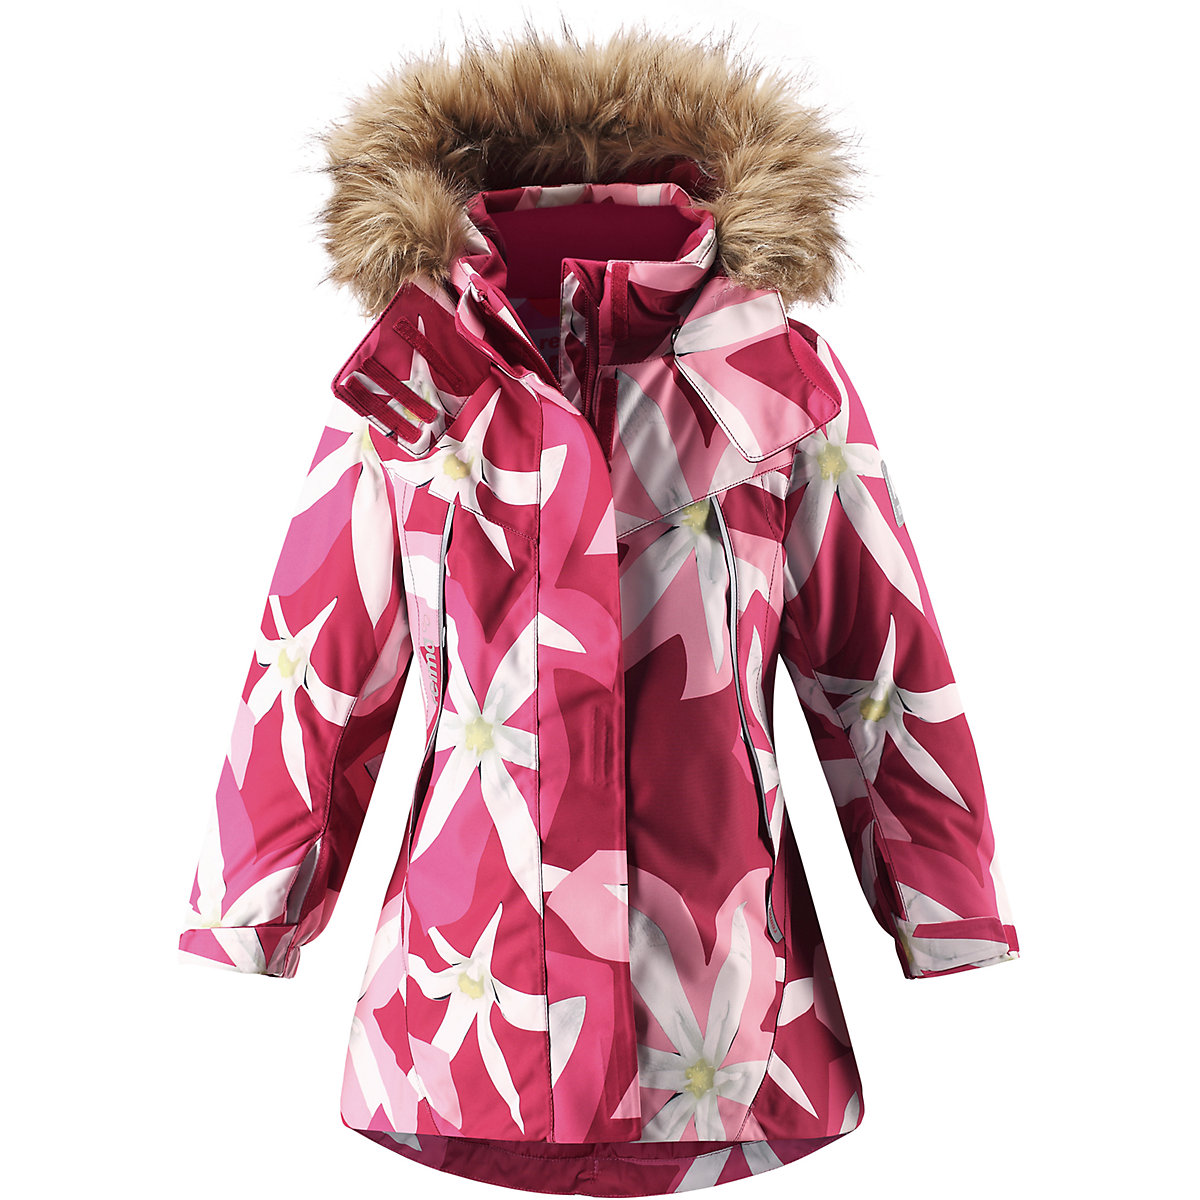 REIMA Jackets & Coats 8688910 for girls baby clothing winter warm boy girl jacket Polyester biboymall winter coat 2017 military coats women cotton wadded hooded jacket casual parkas thickness plus size snow outwear